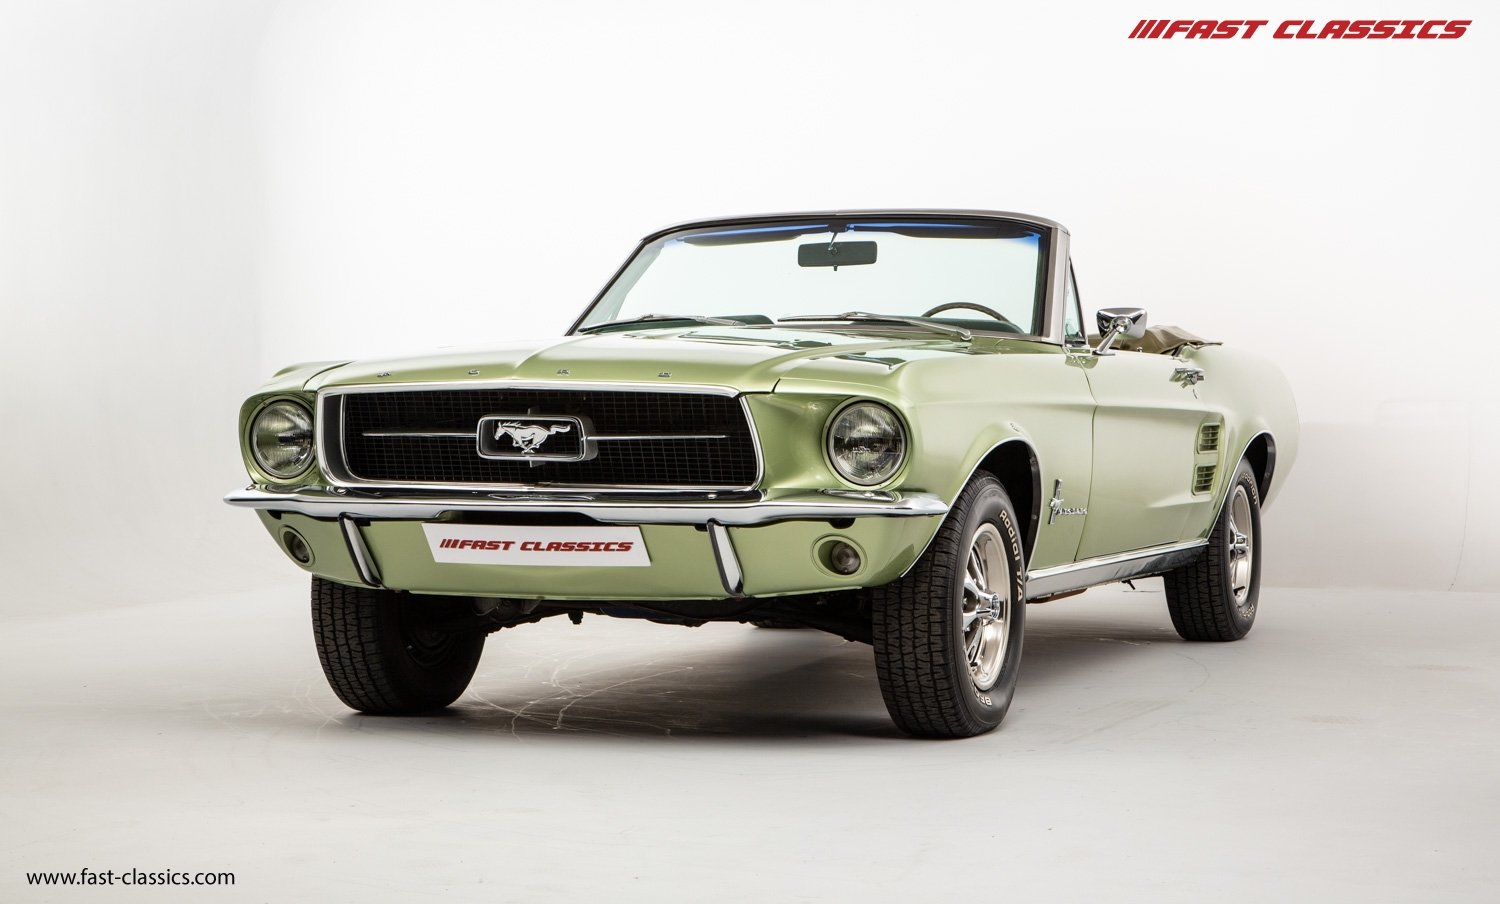 FORD MUSTANG CONVERTIBLE // 1967 FACTORY 4-SPEED MANUAL For Sale (picture 2 of 23)